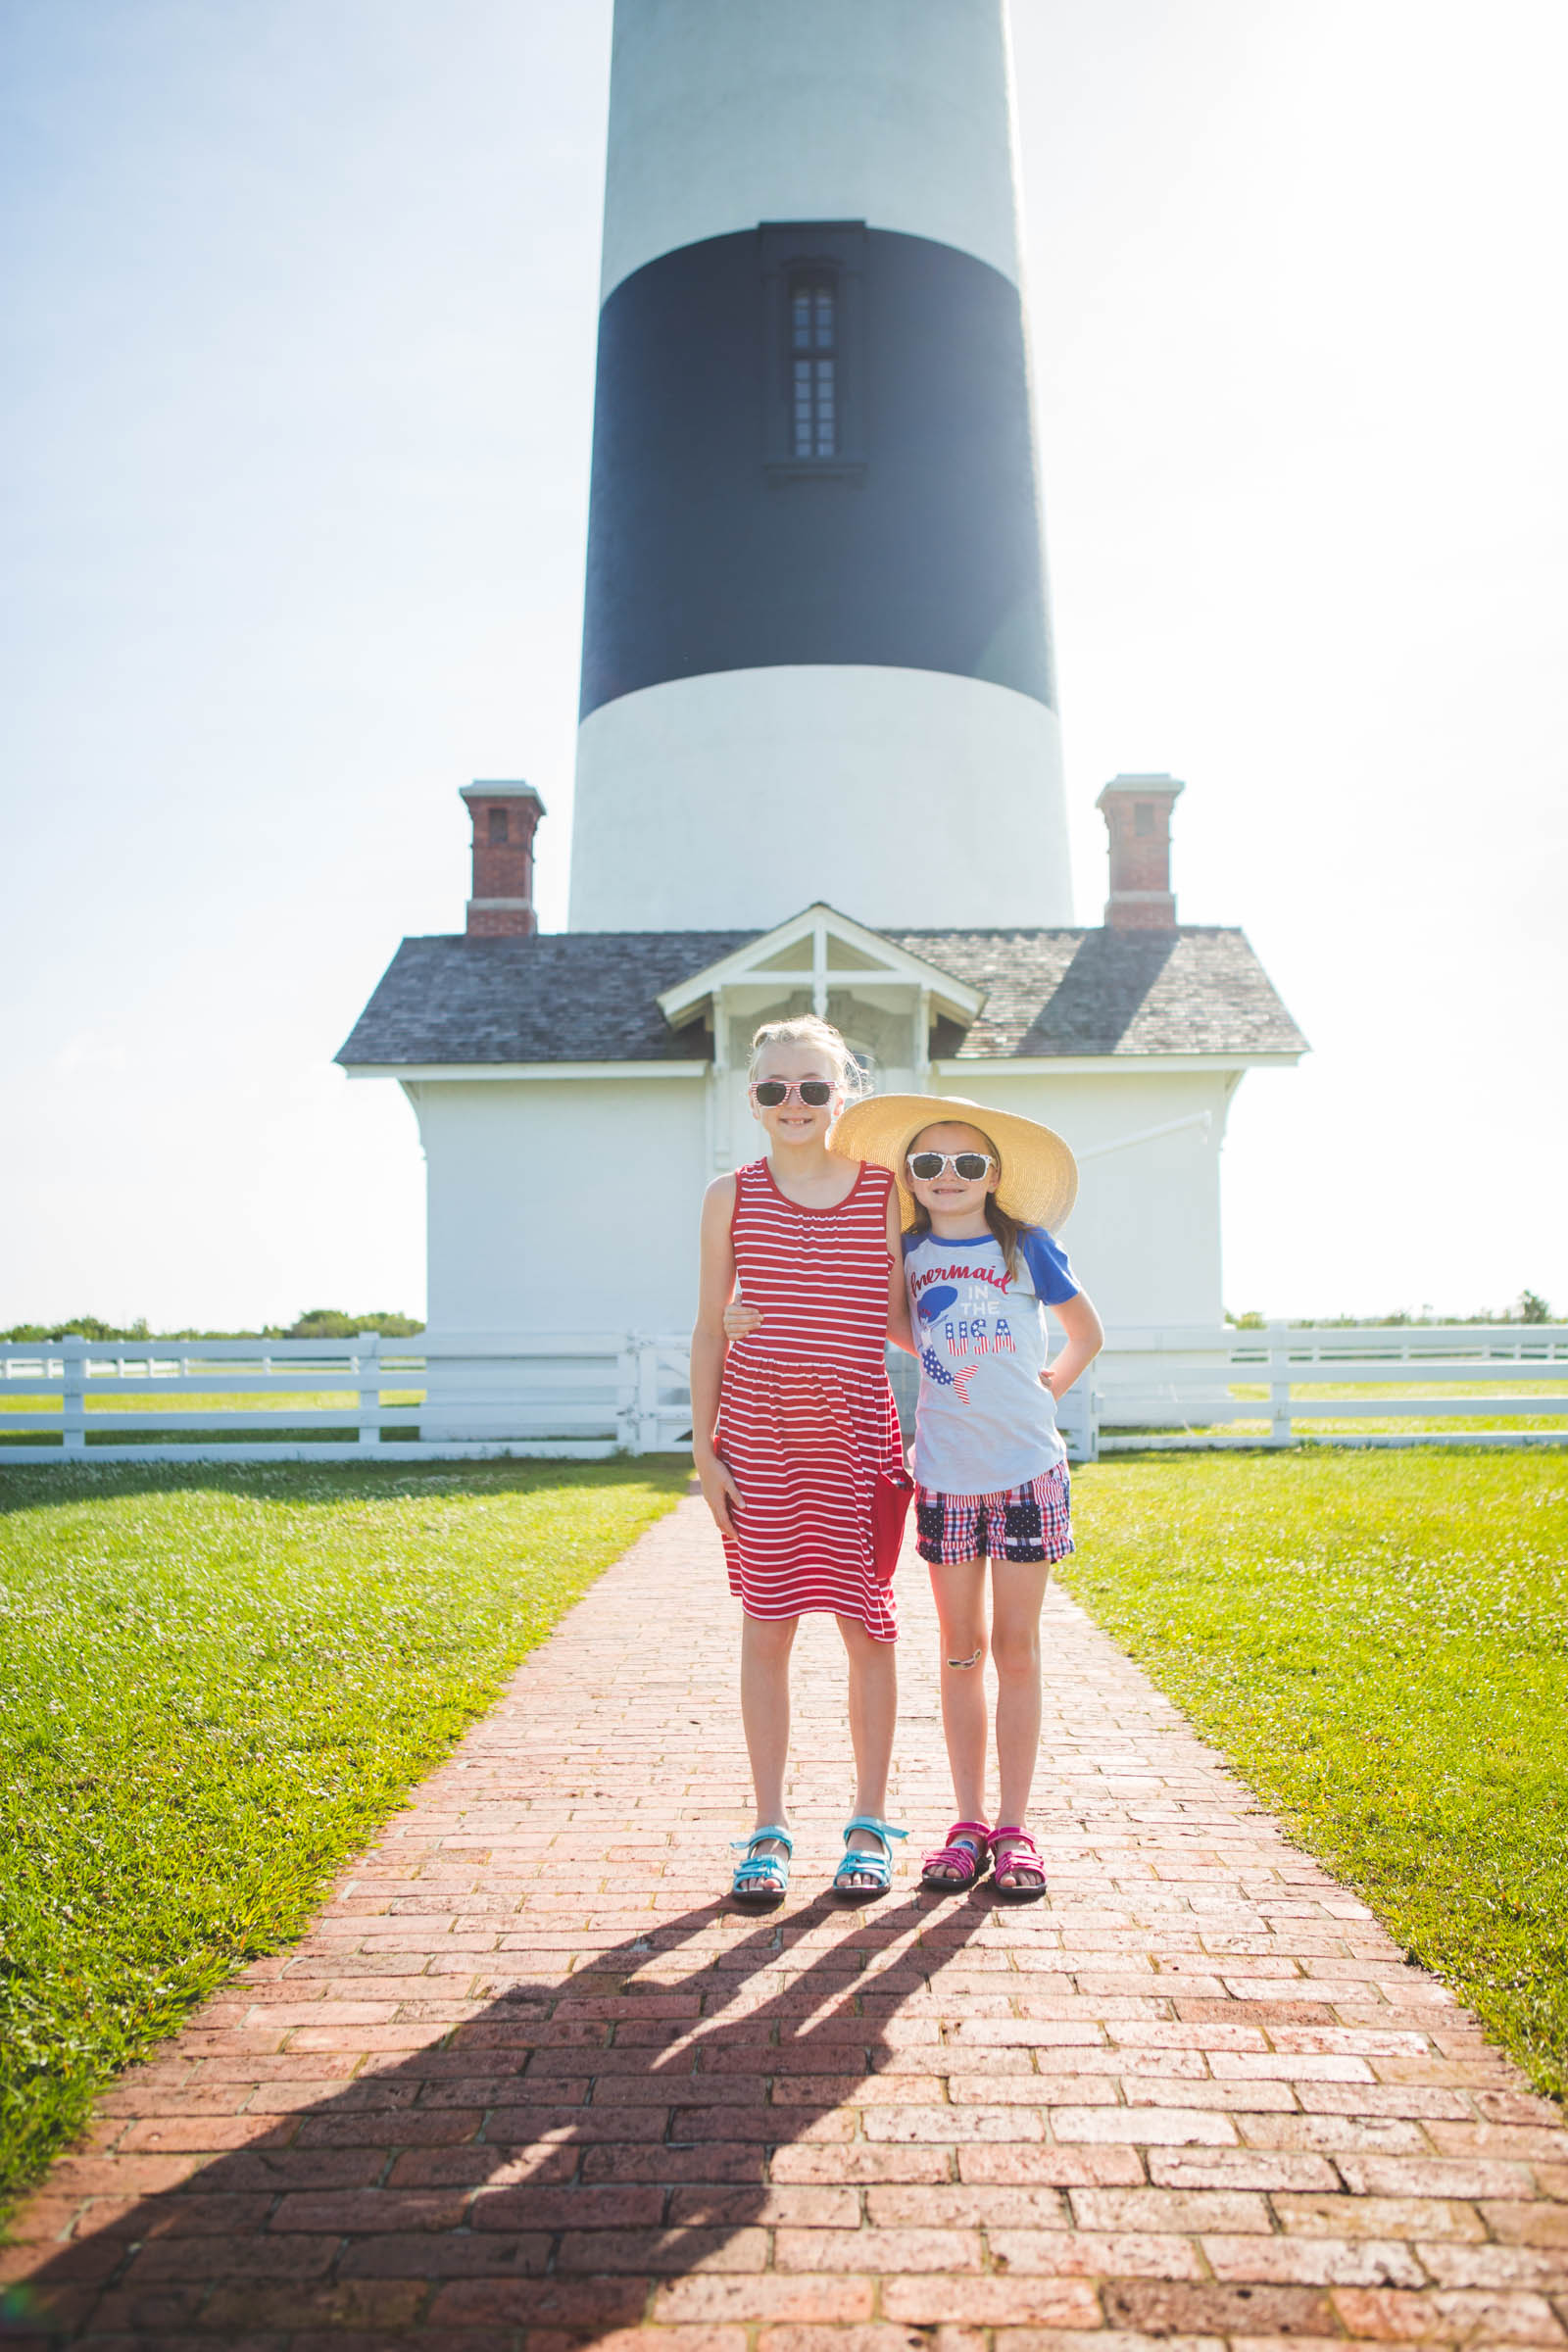 NC lighthouses project for 4th graders: Bring history to life and visit their lighthouse this summer!